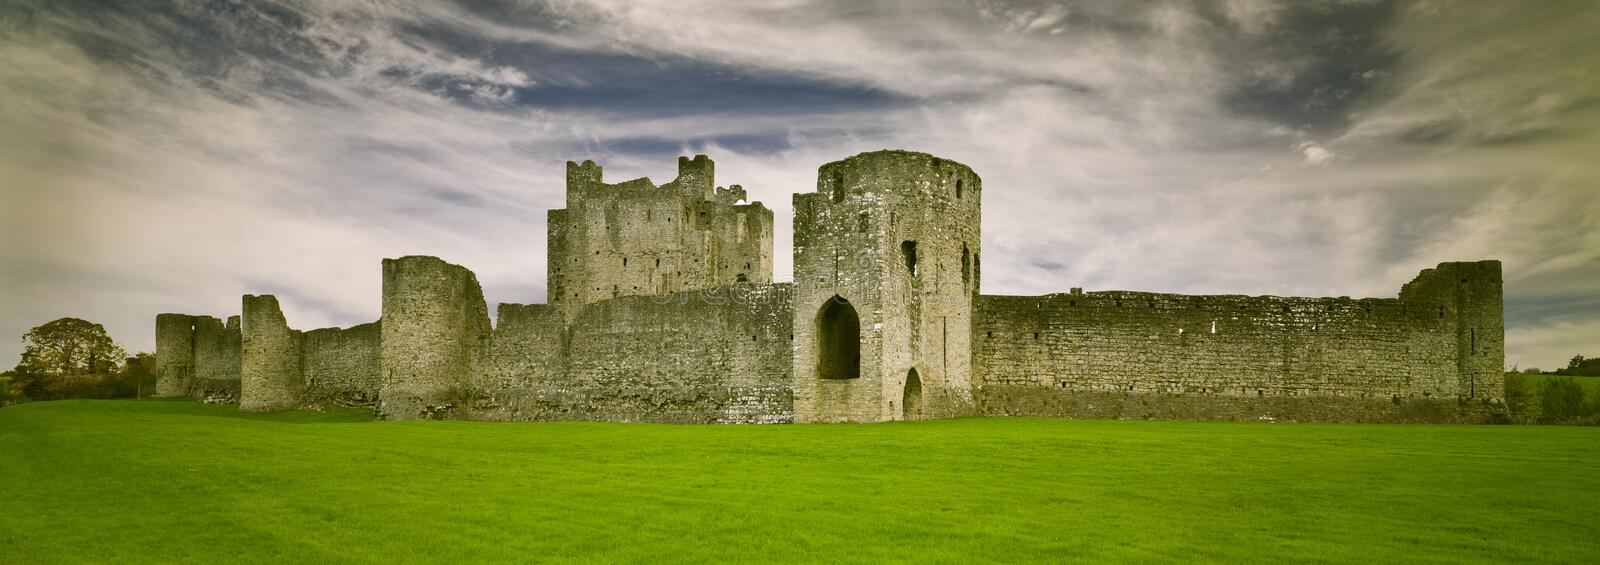 Trim Castle Trim, County Meath, Ireland. Green grass and cloudy sky. Morning stock photos